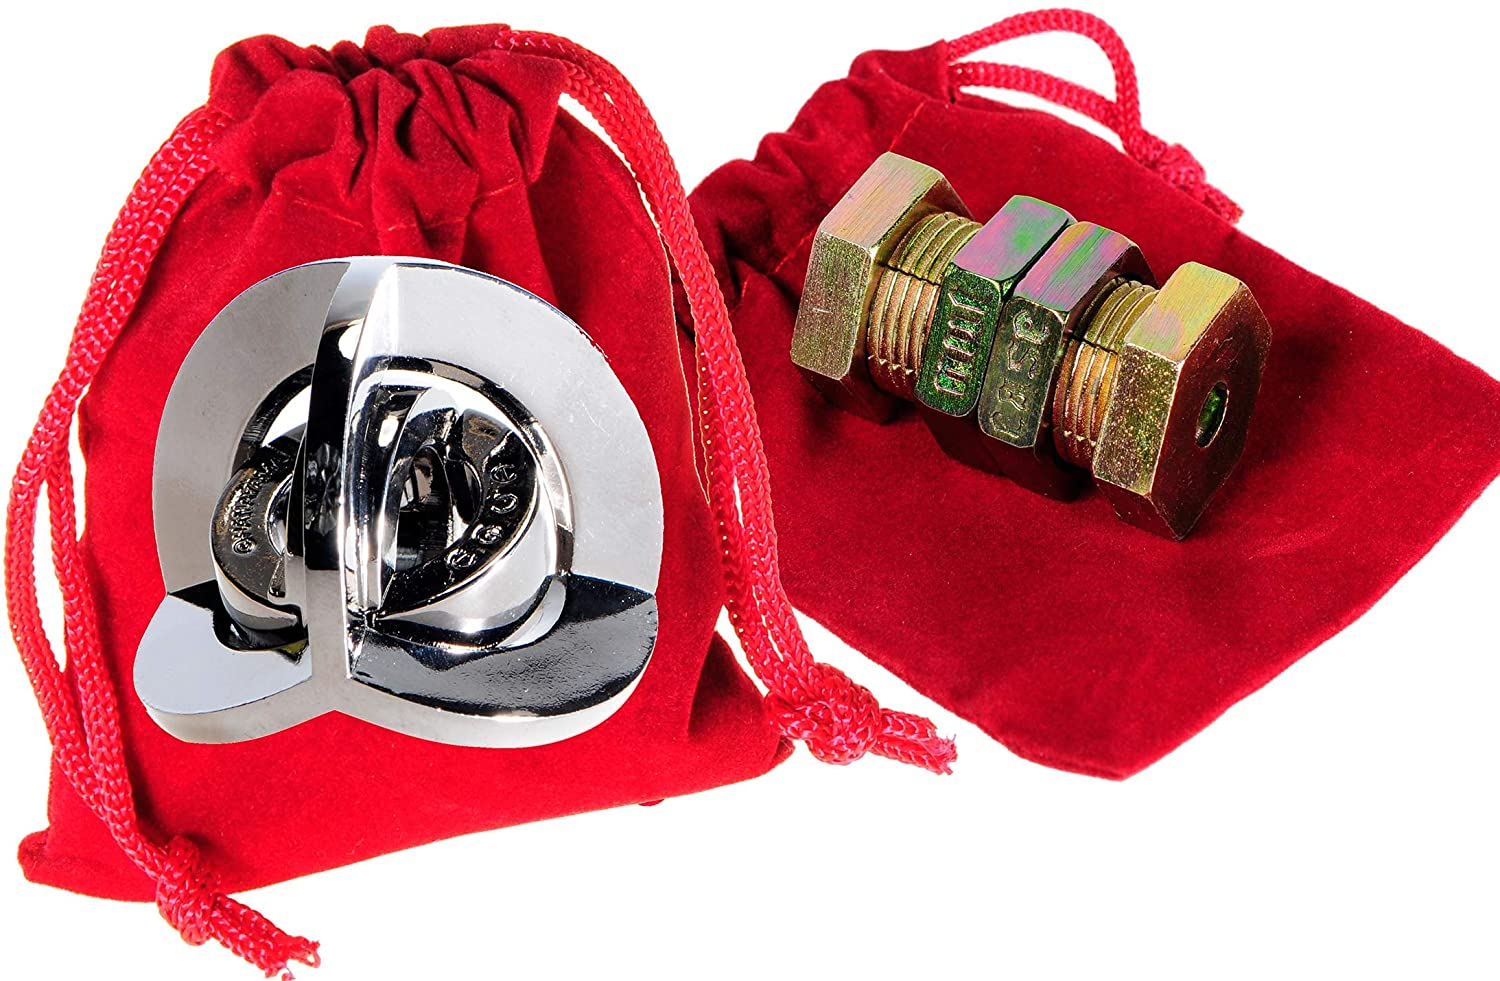 NUTCASE & EQUA Hanayama Brain Teaser Puzzles, with RED Velveteen Drawstring Pouches - Bundled Items